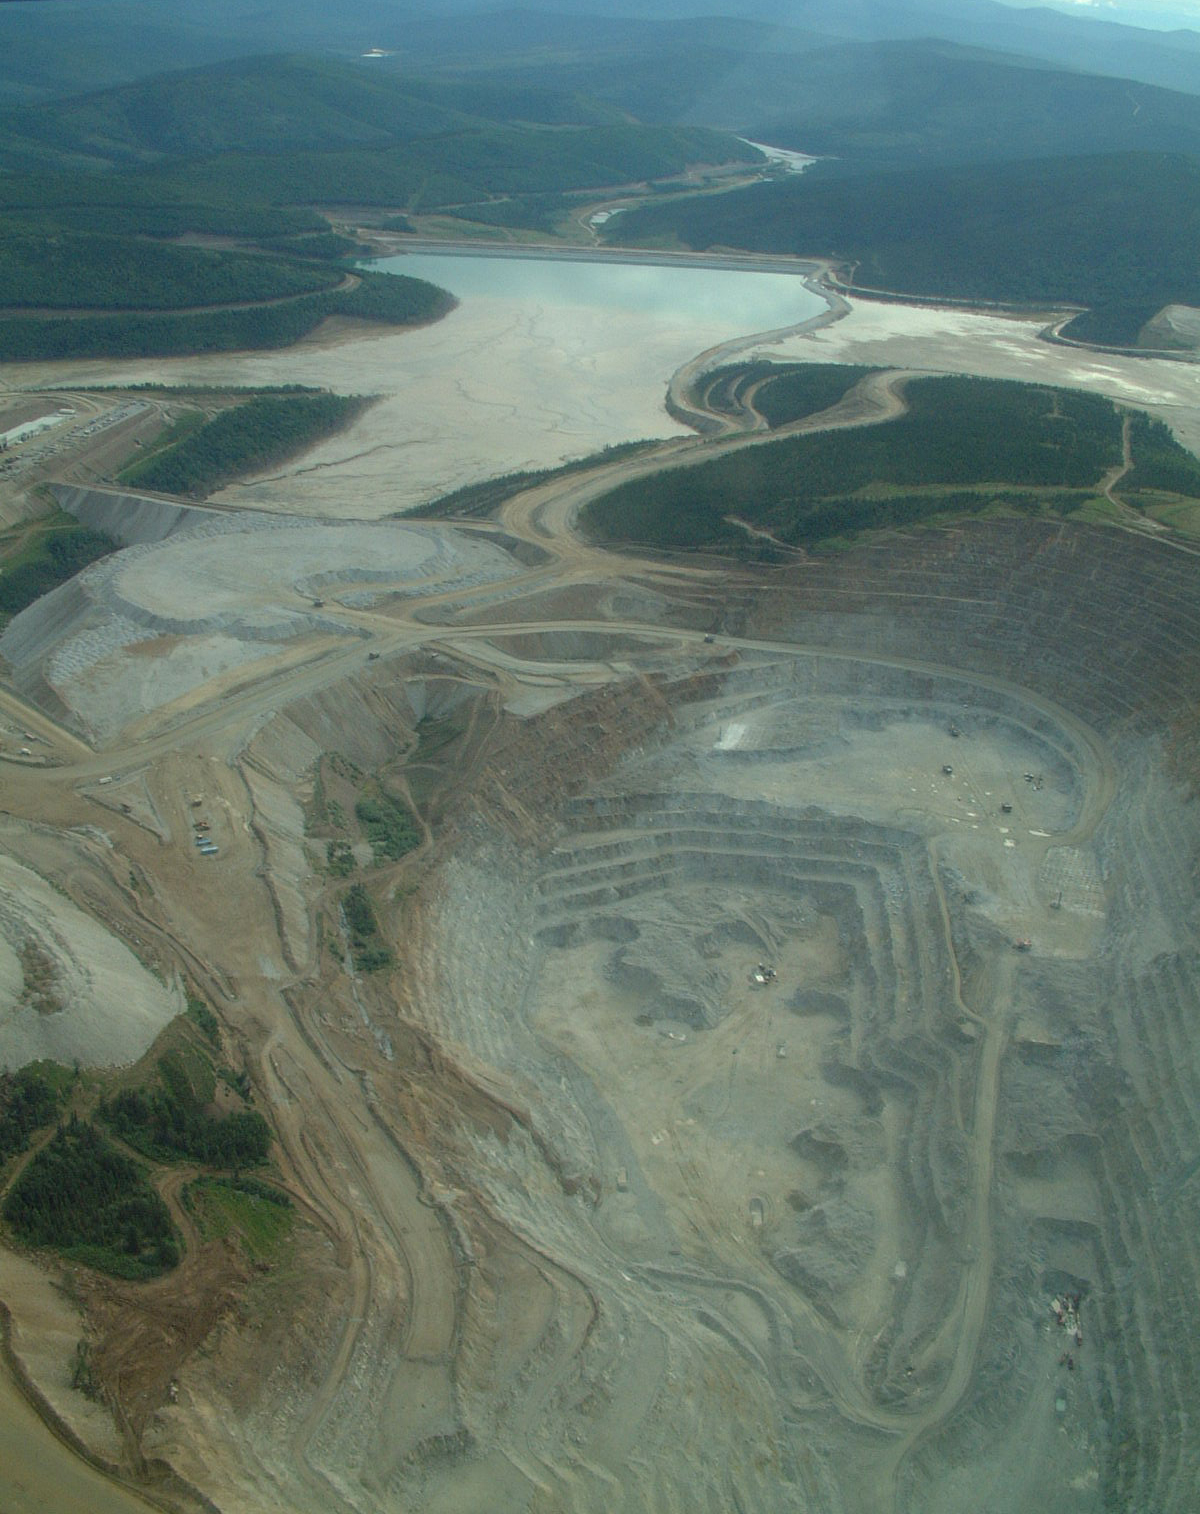 an essay on gold mining techniques Since adit mining take place horizontally, air current could easily enter the mine essay on mining and pollution mining and pollution in 1969 the maricopper mine corporation began mining for copper, silver and gold at the mount tapian ore deposits.